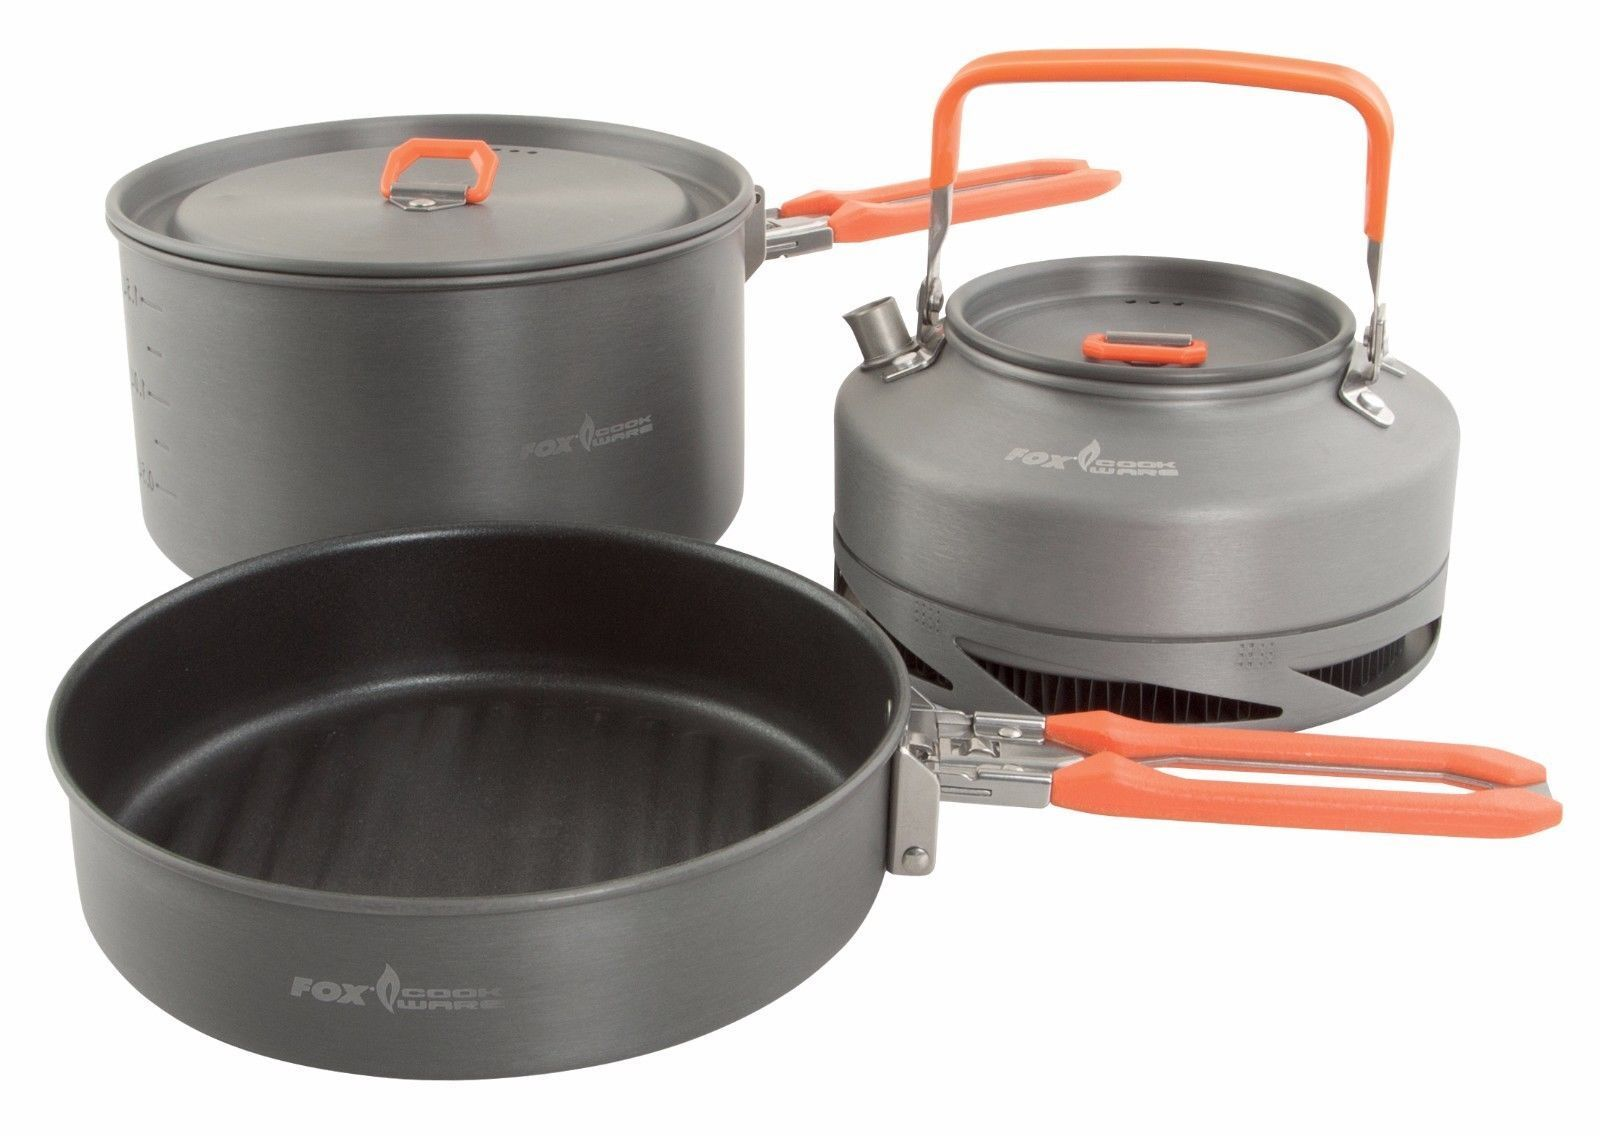 FOX 3 PIECE PAN & KETTLE COOKSET- CCW001